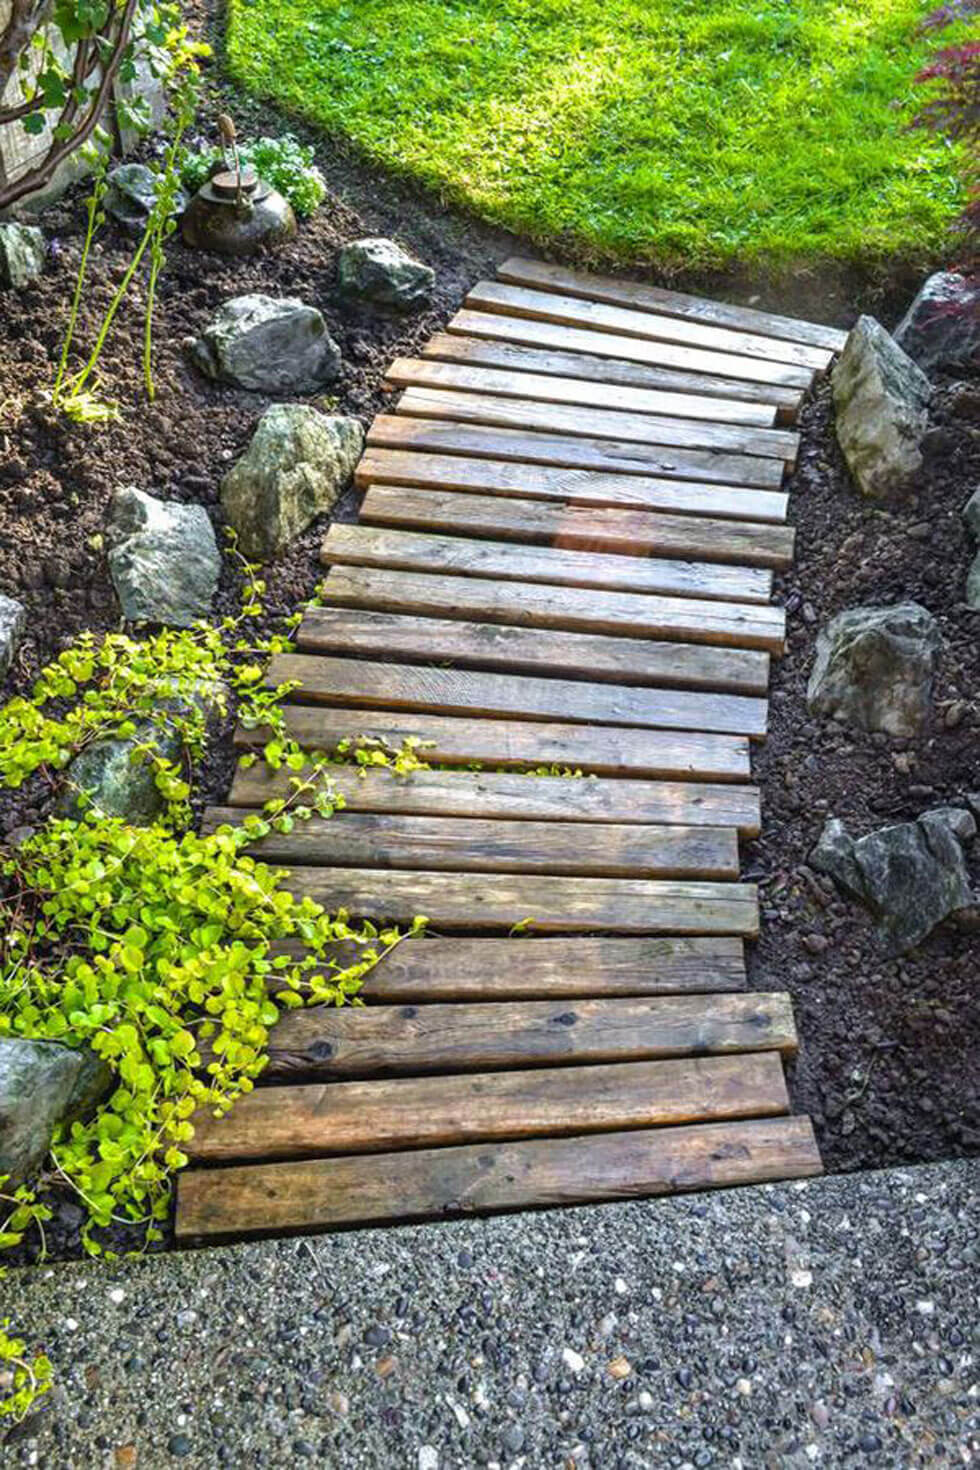 25 Best Garden Path and Walkway Ideas and Designs for 2020 on Backyard Walkway Ideas id=16318